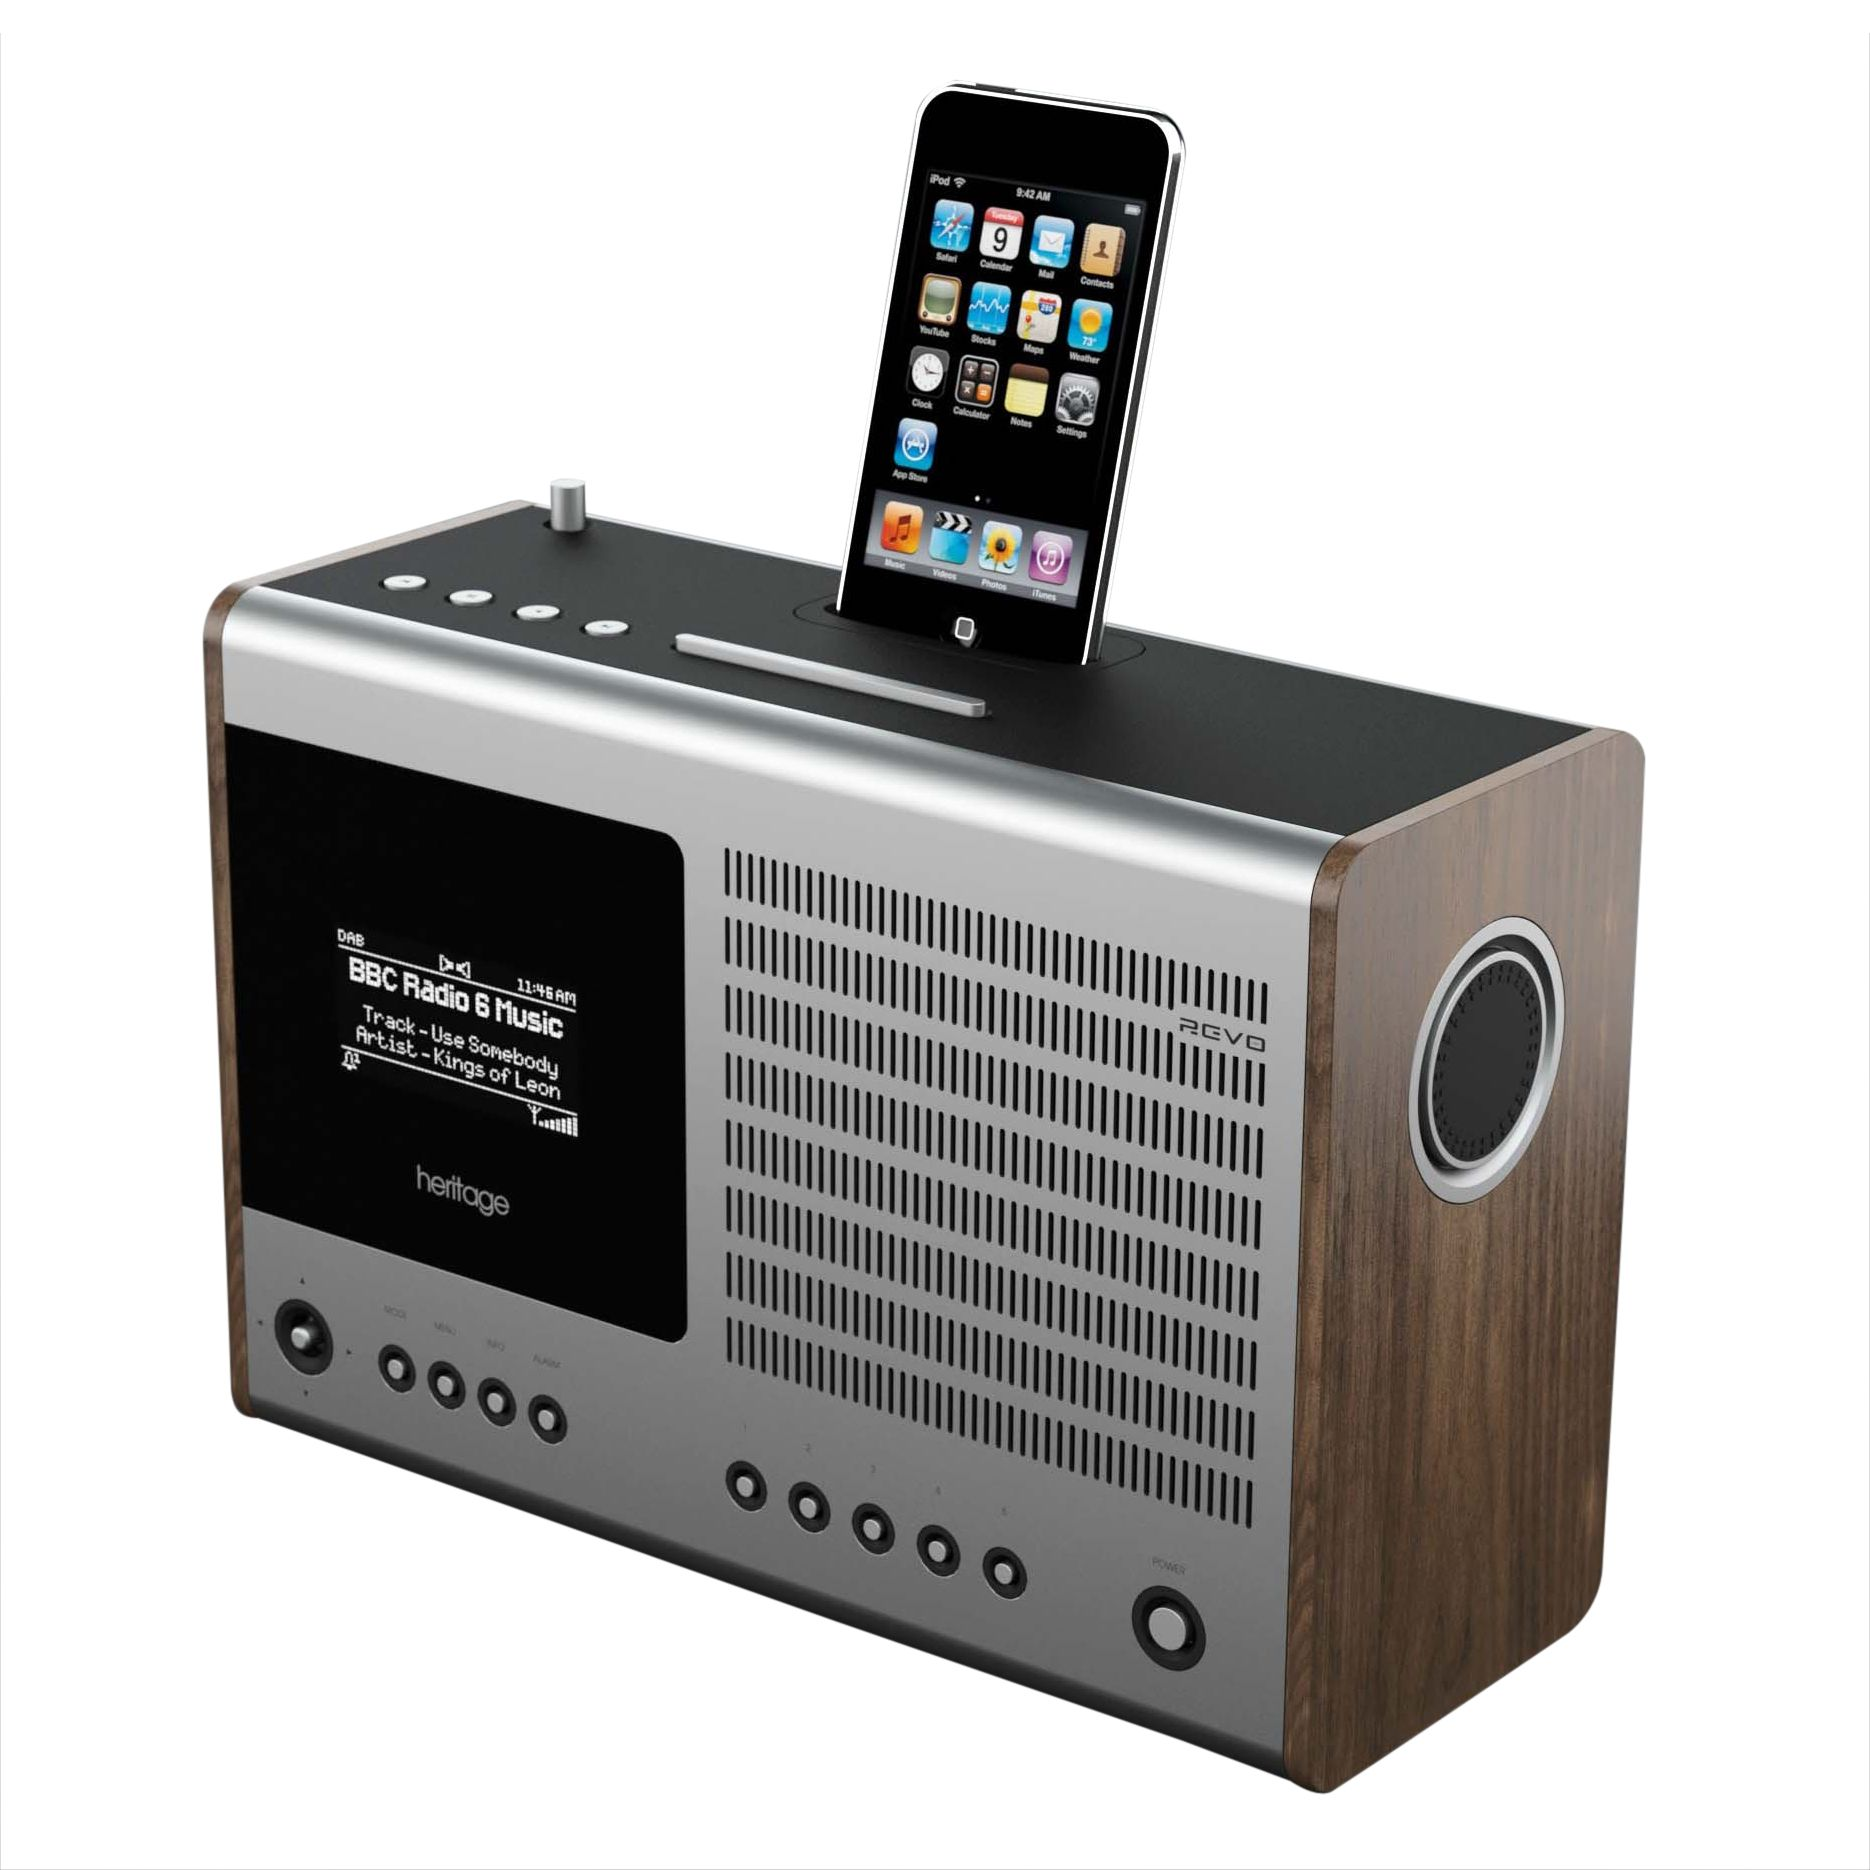 Revo Heritage DAB Internet Radio at JohnLewis